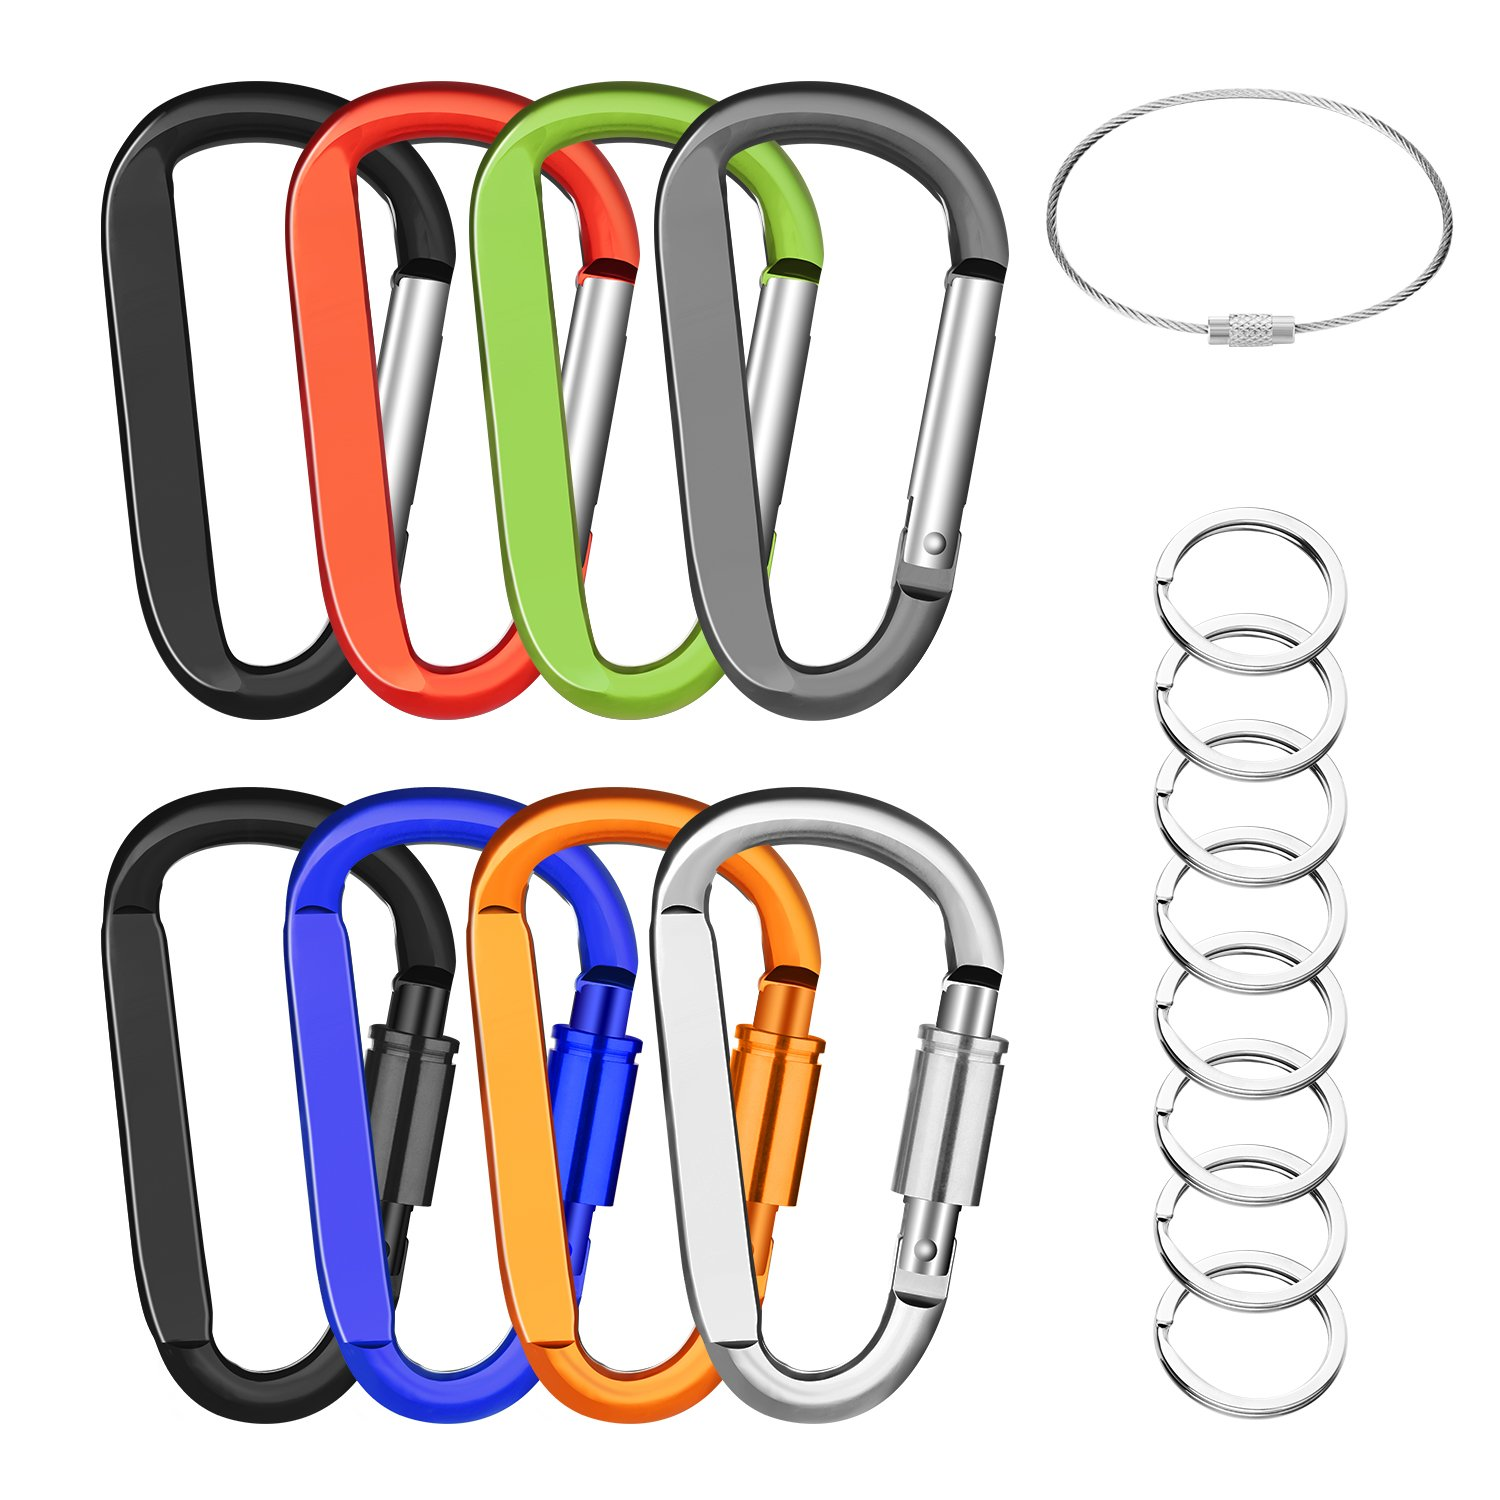 3 8PCS Durable Carabiner Clip, Improved 4PCS Locking + 4PCS Nonloking Aluminum D Ring Hook for Backpack Camping Hiking Michael Josh